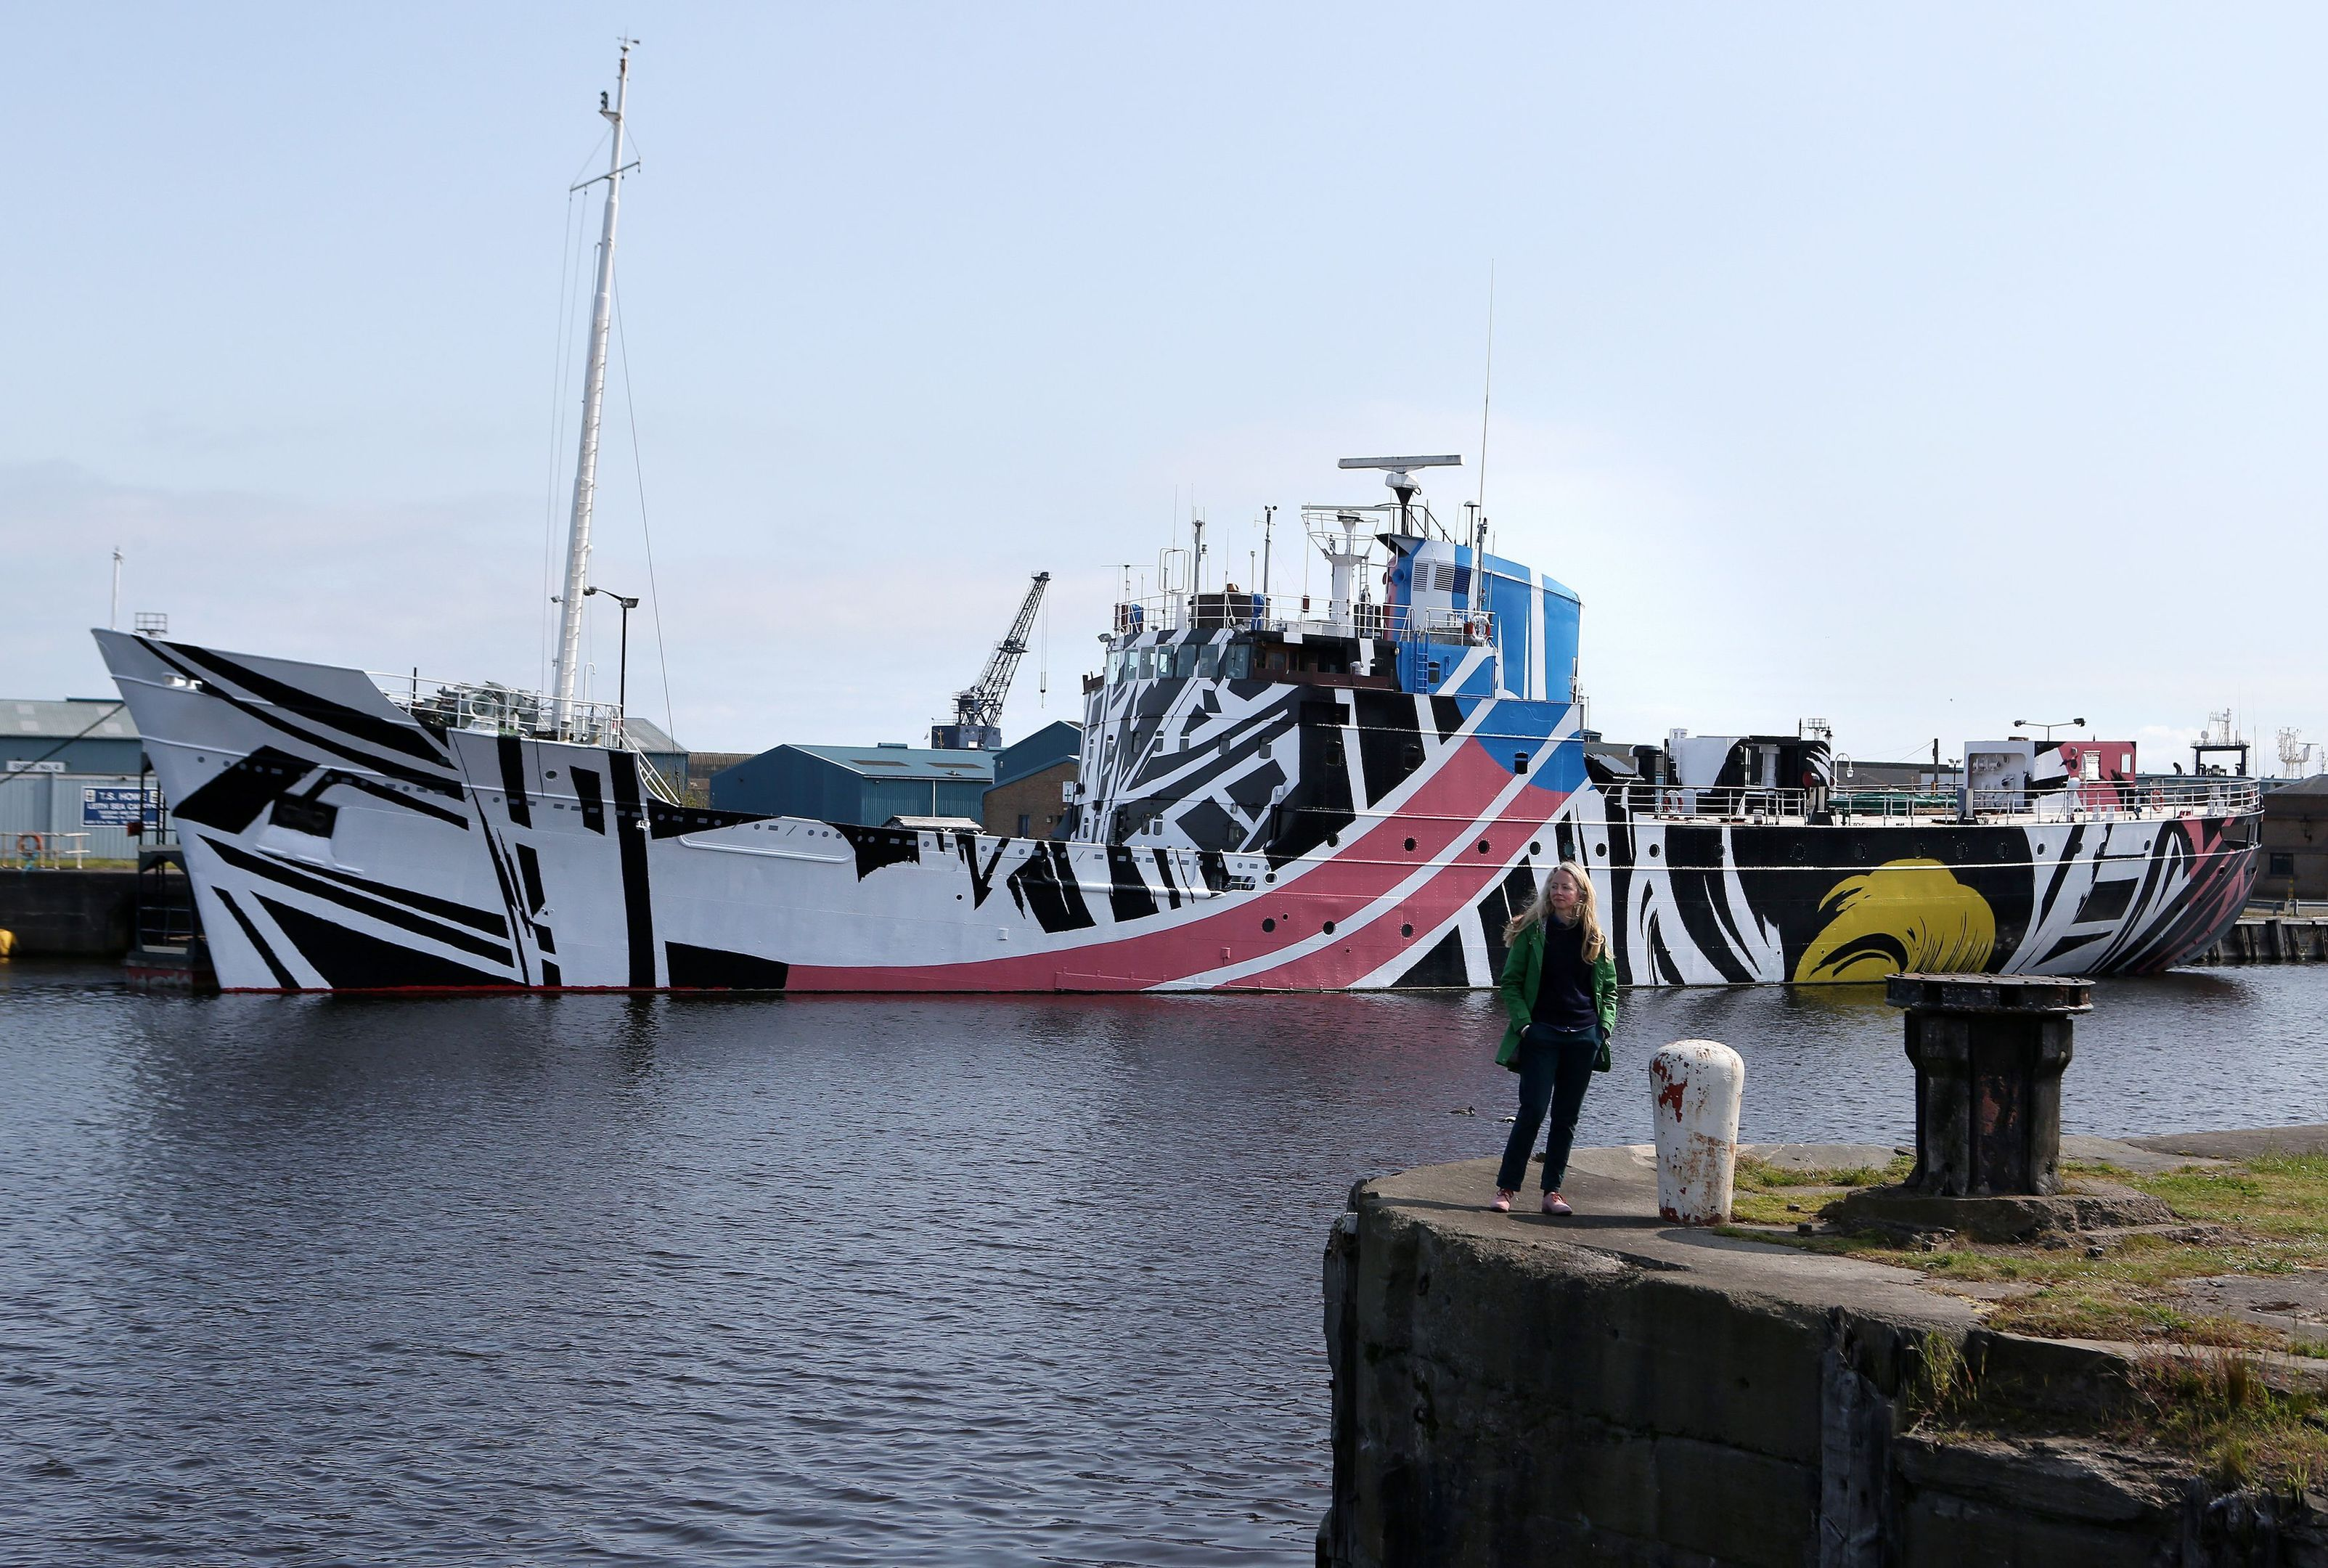 """Ciara's design is the fourth in a series of """"Dazzle Ships"""" by contemporary artists to coincide with First World War commemorations and the centenary of the Battle of Jutland."""